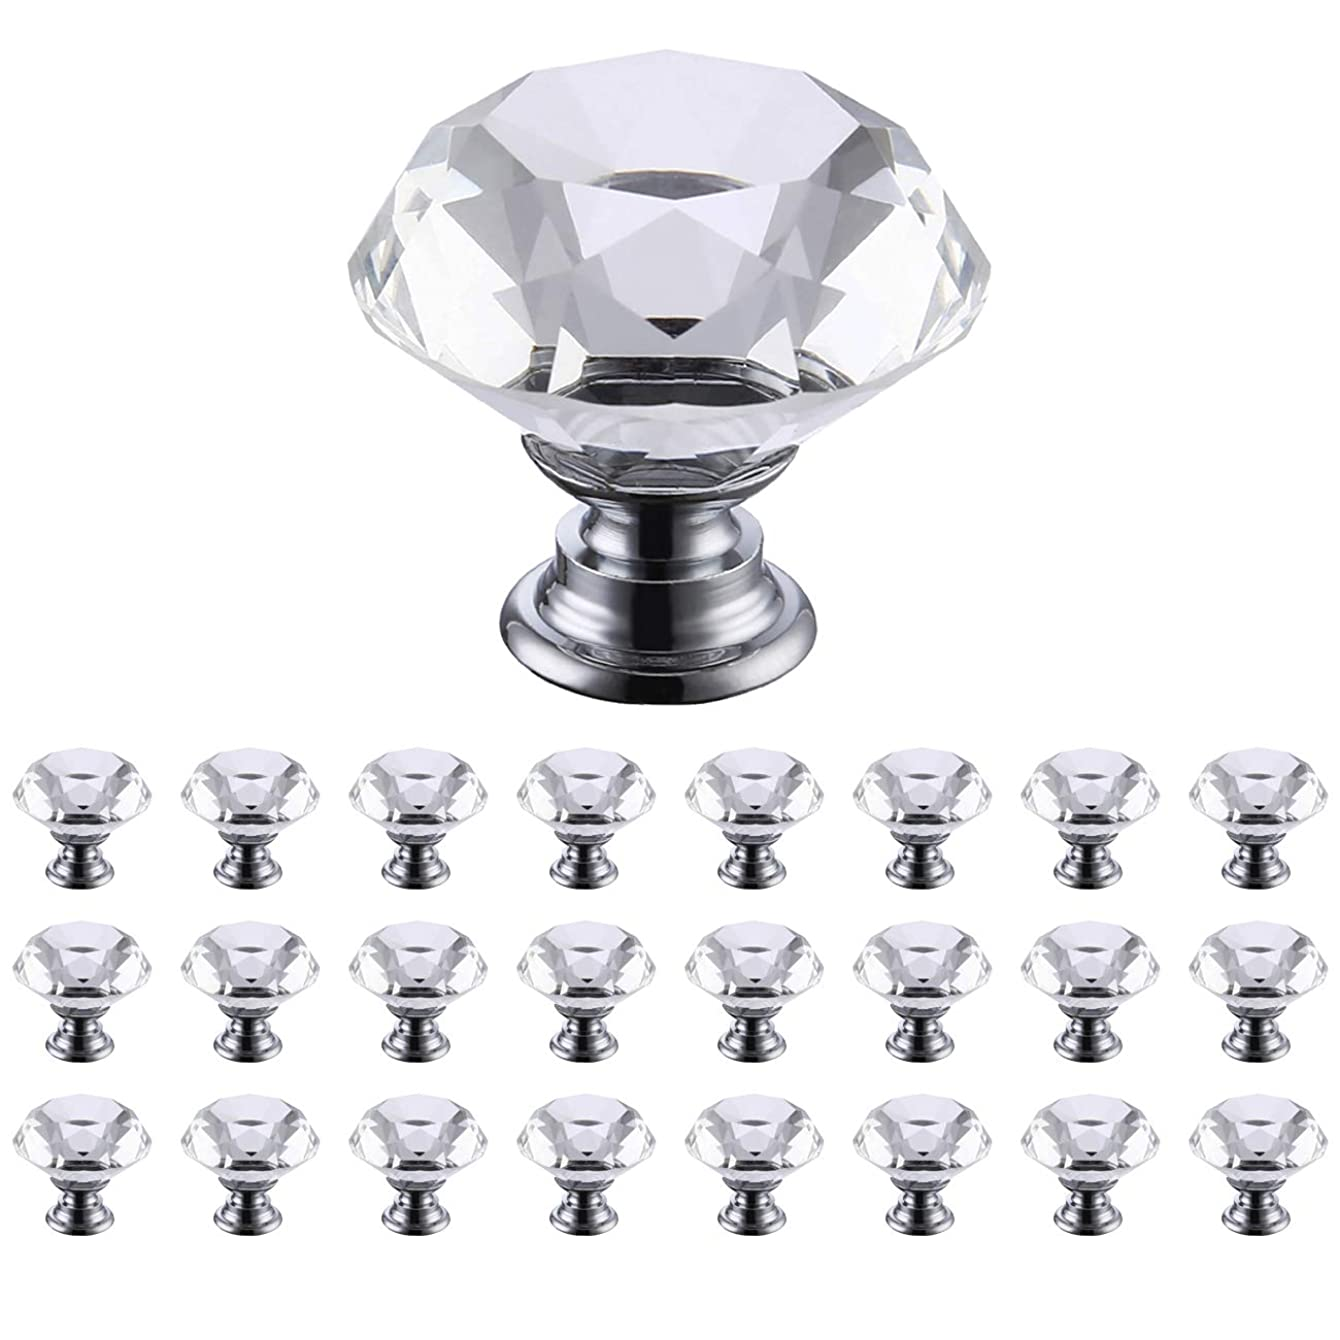 KES Cabinet Knobs 25 Pack Crystal Glass Dresser Drawer Knobs Diamond Shape Hand Pull for Home Kitchen Bathroom Cupboard, HCK700-P25